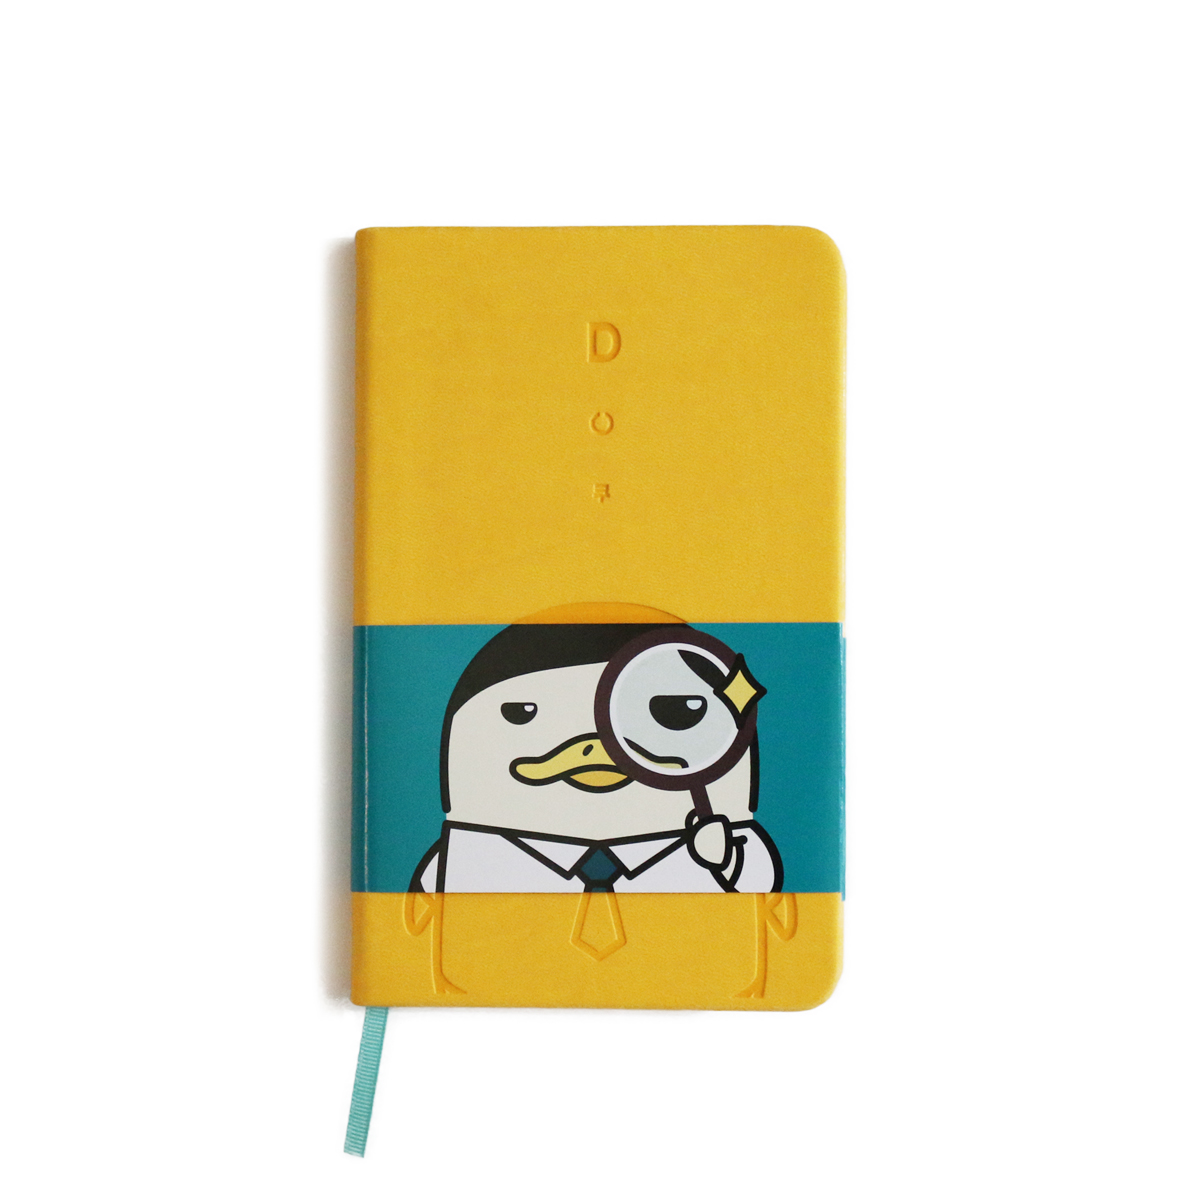 [WORKS x DUCKOO] BOMBOM NOTEBOOK